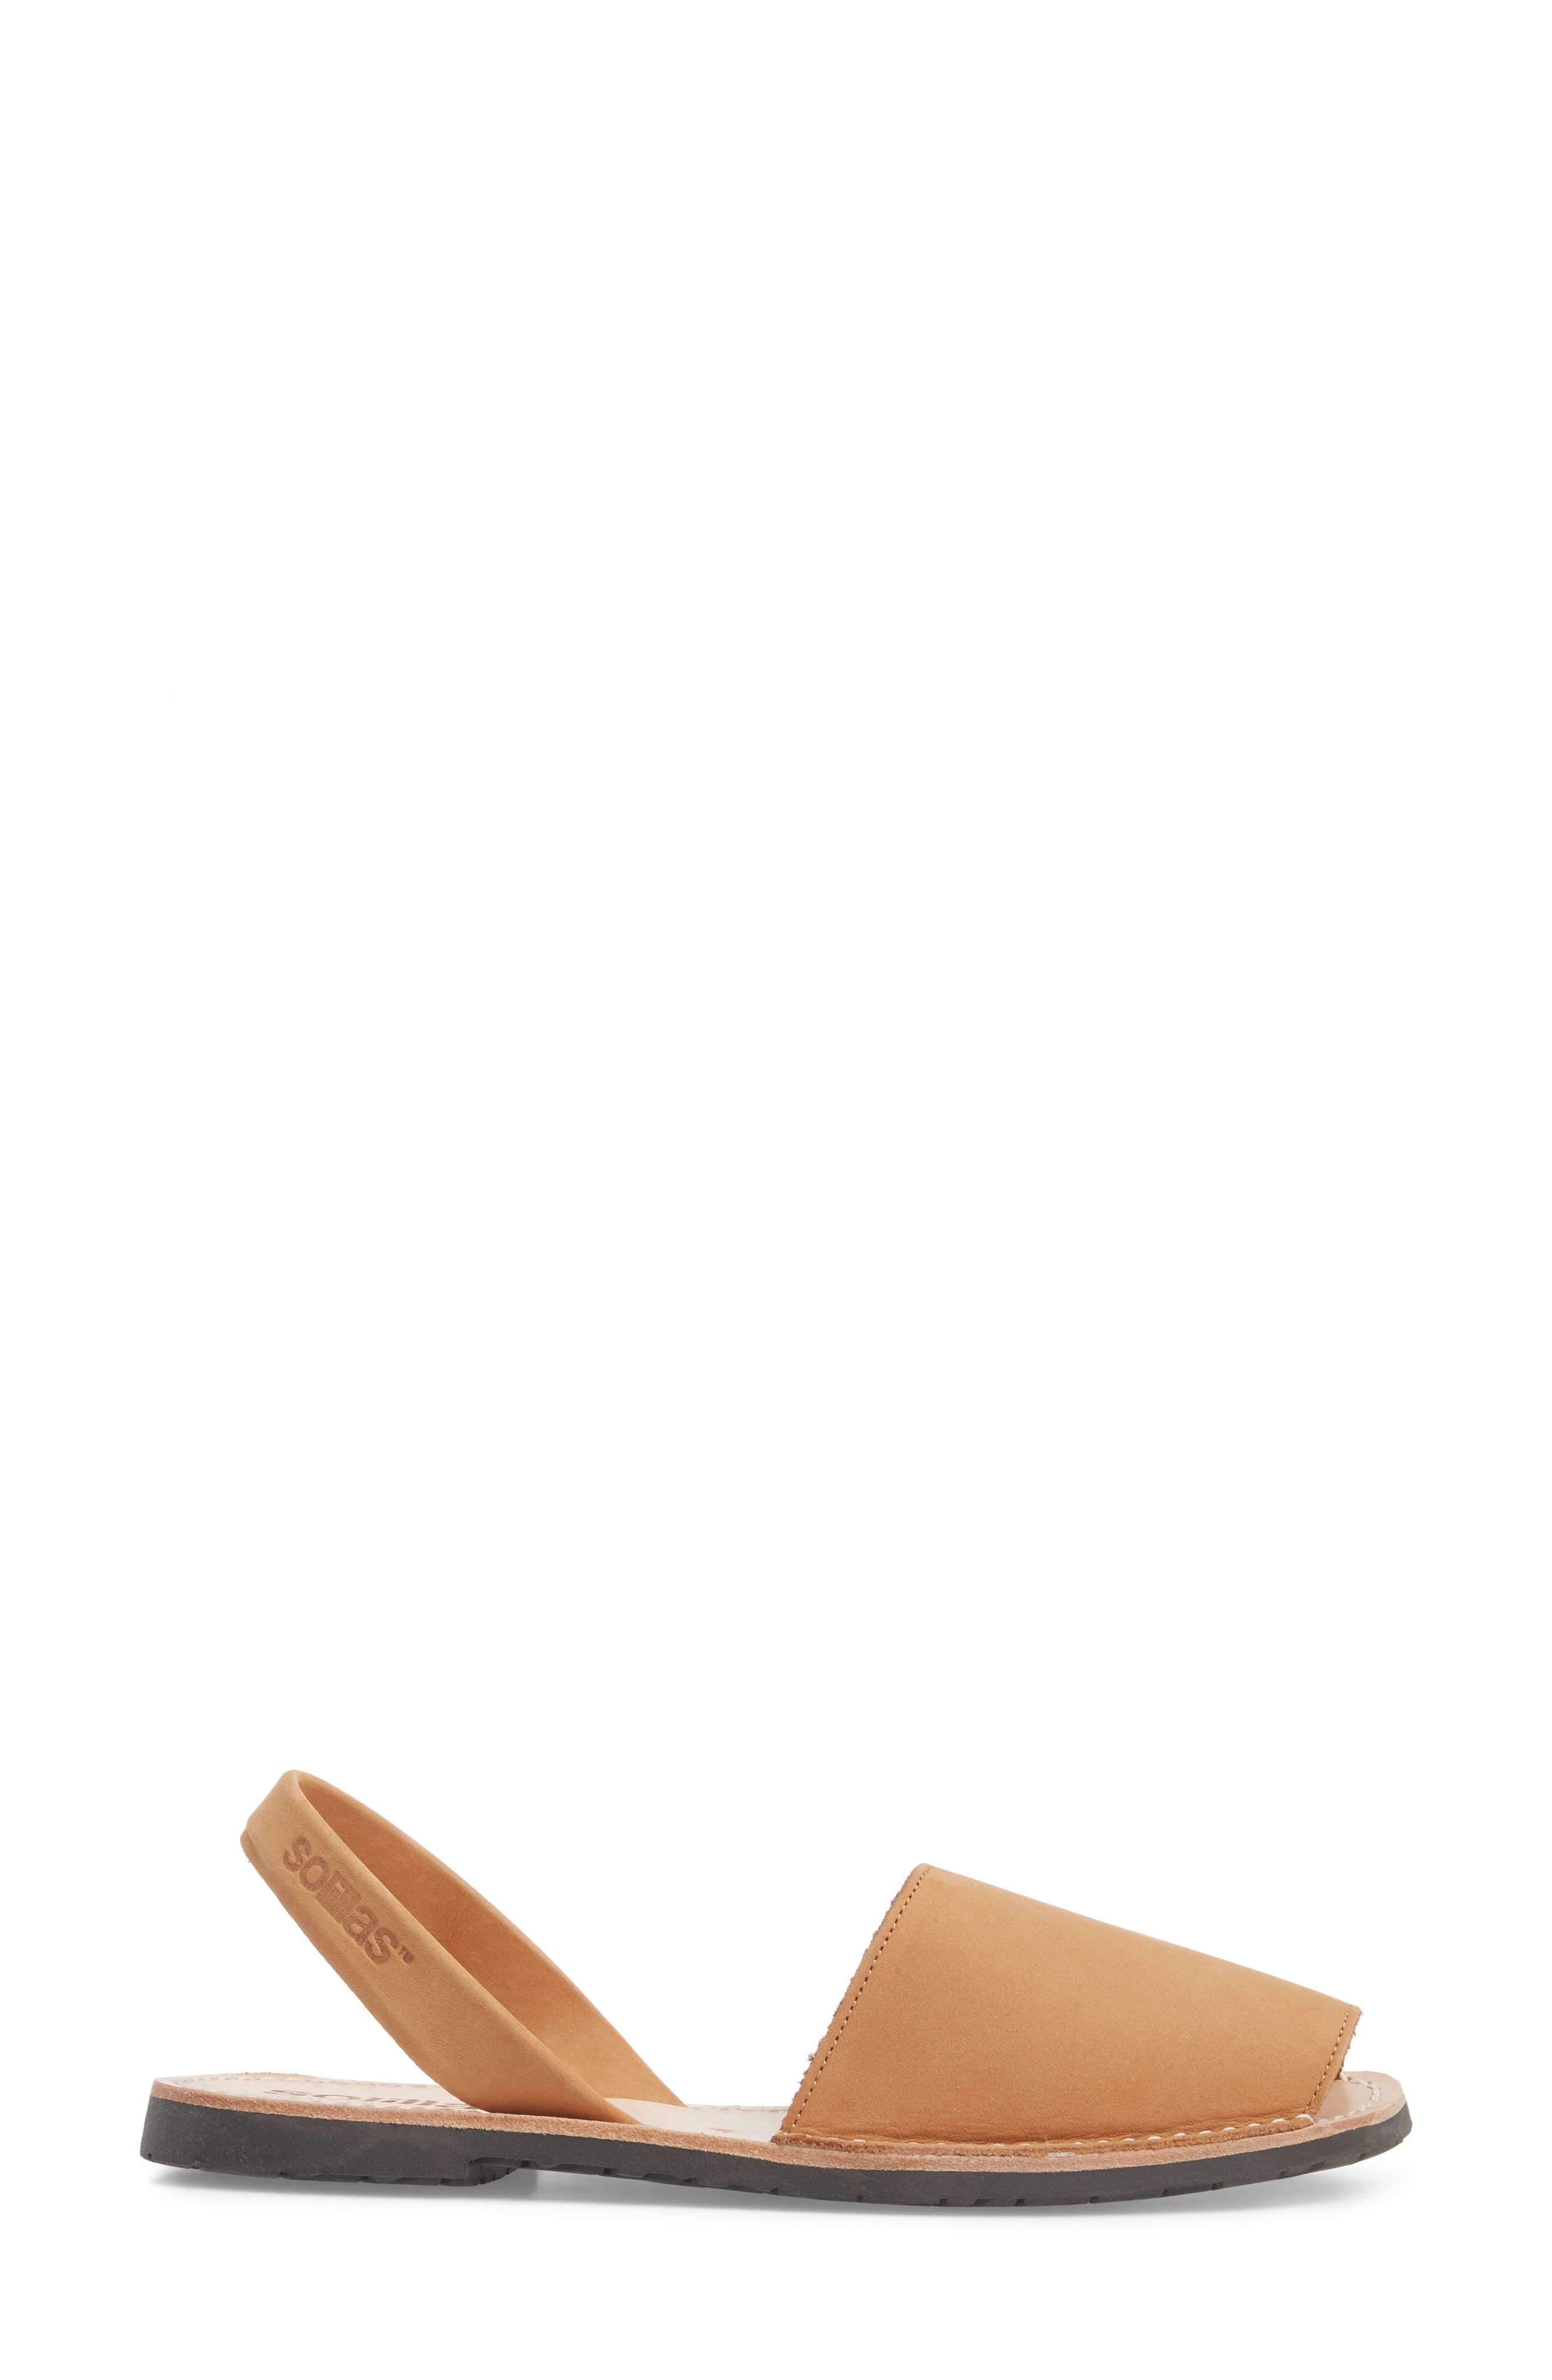 Flat Sandal,                             Alternate thumbnail 3, color,                             Tan